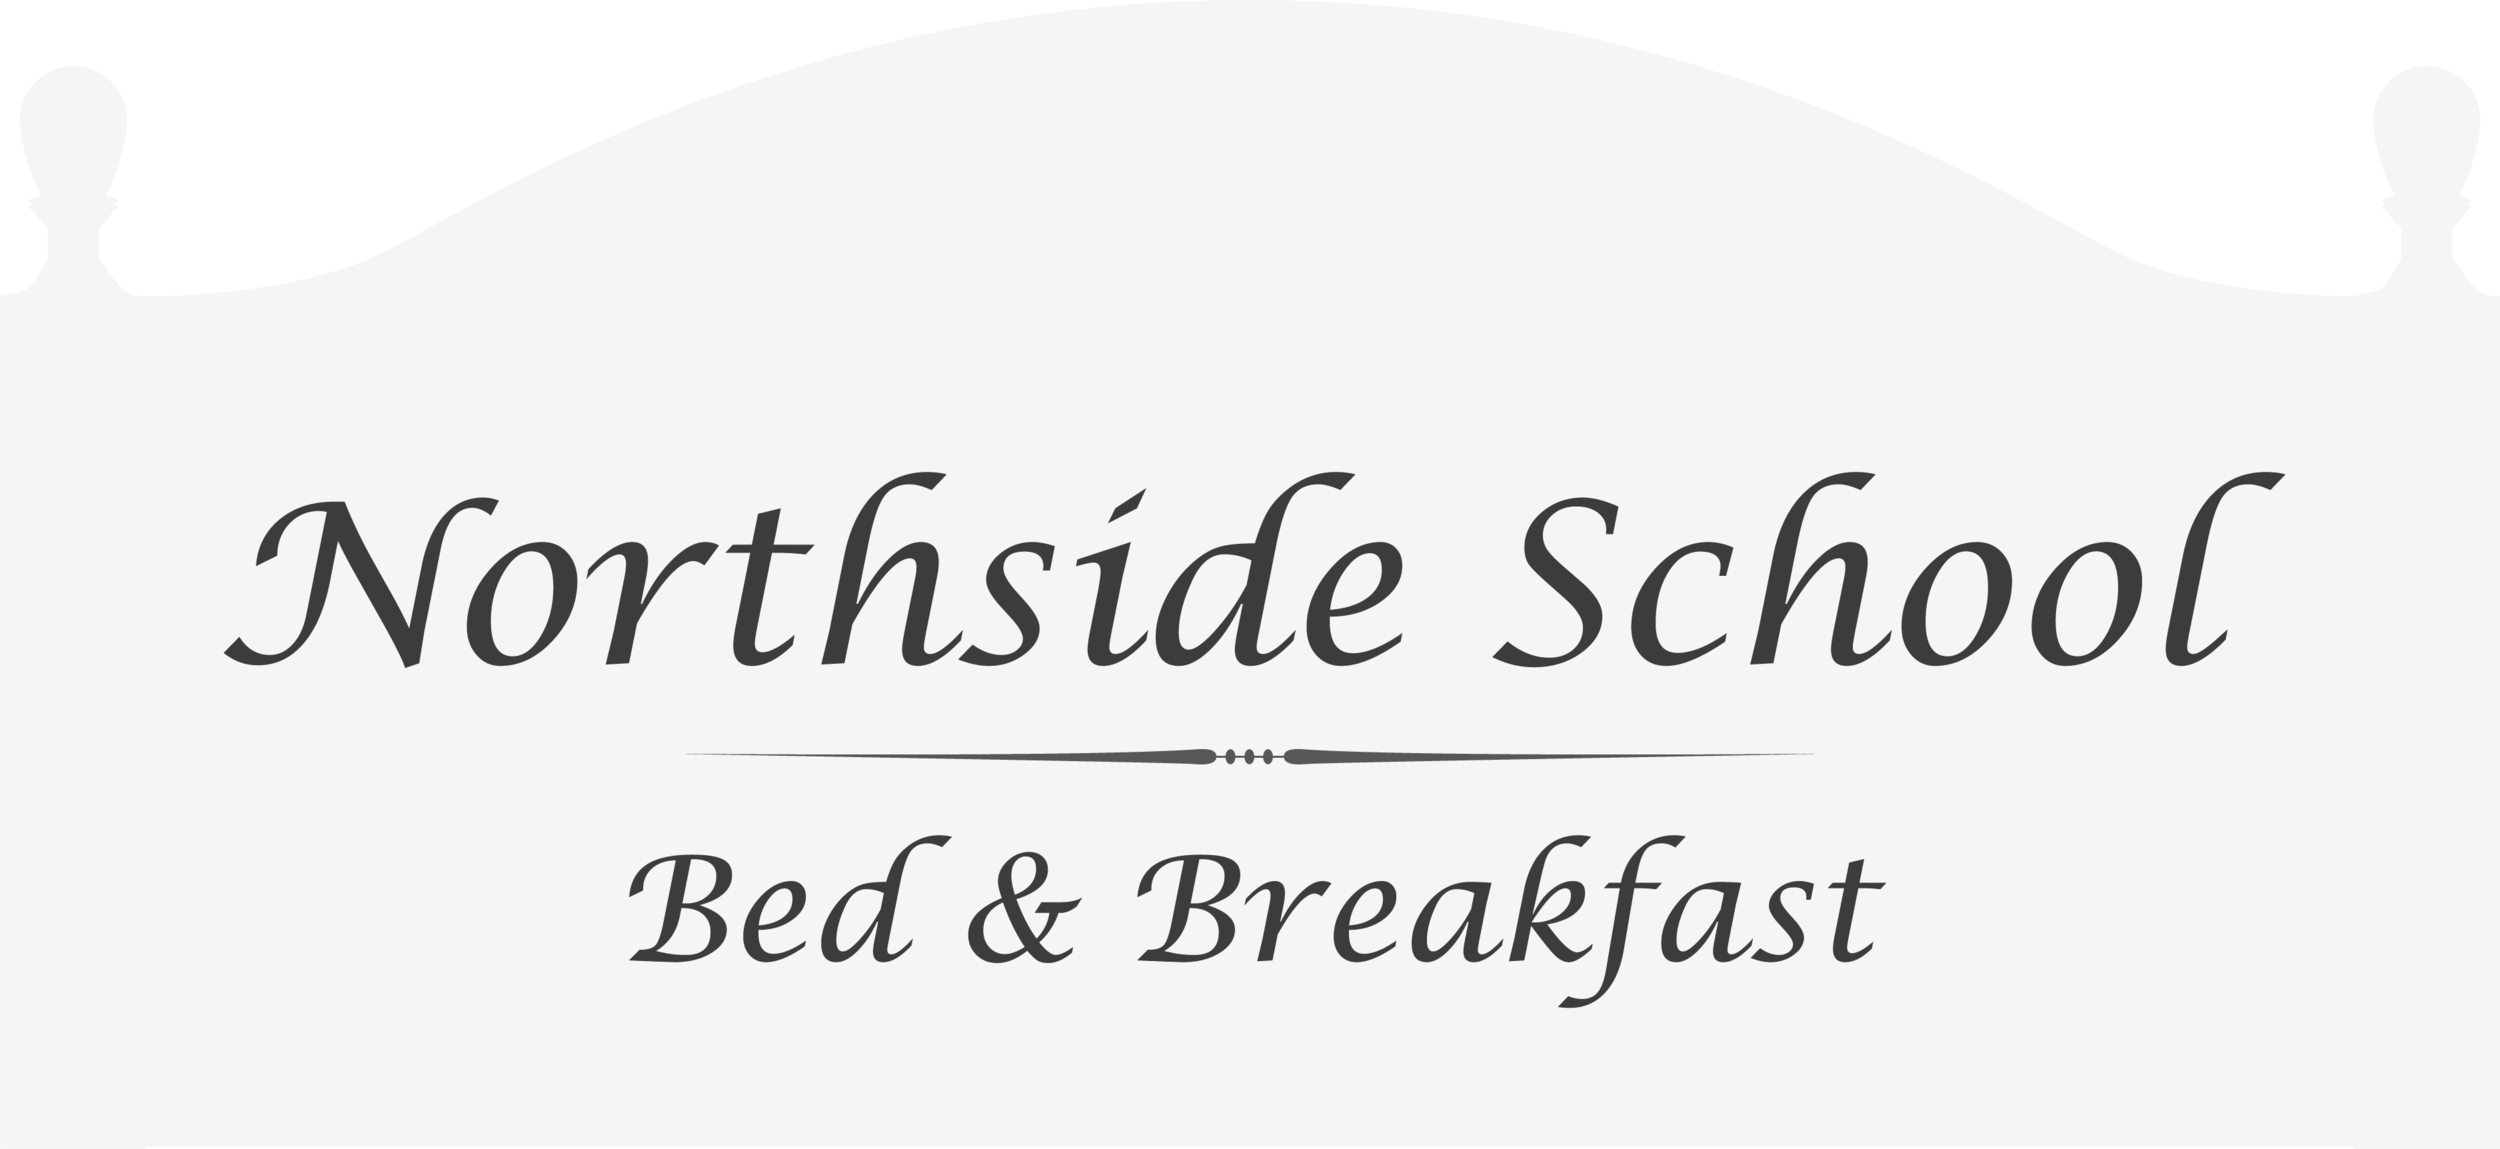 Northside School Bed and Breakfast